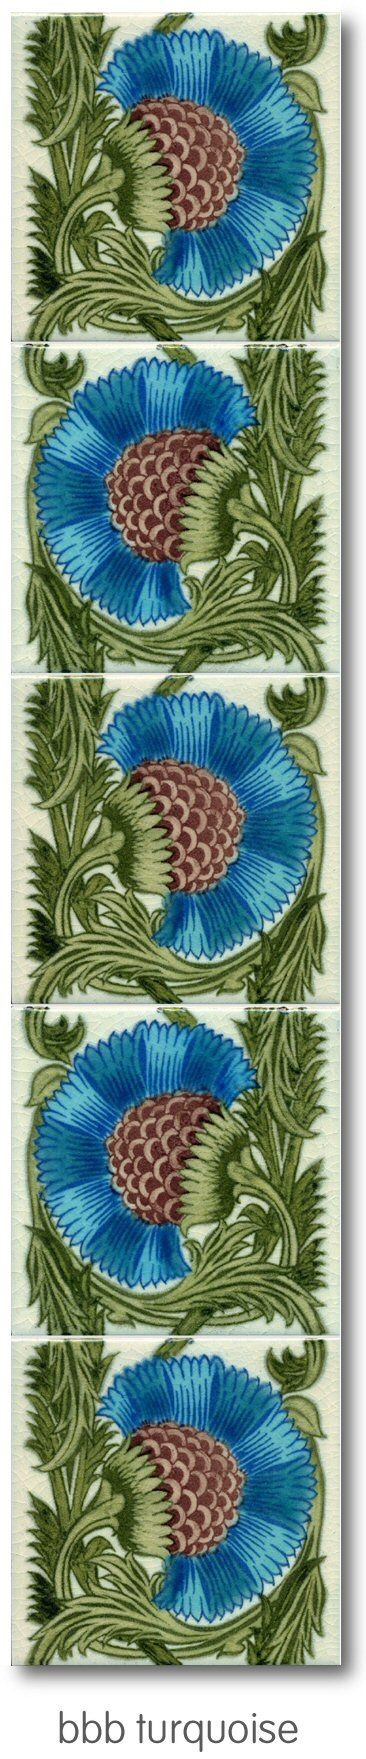 Victorian Fireplace Tiles - BBB Turquoise